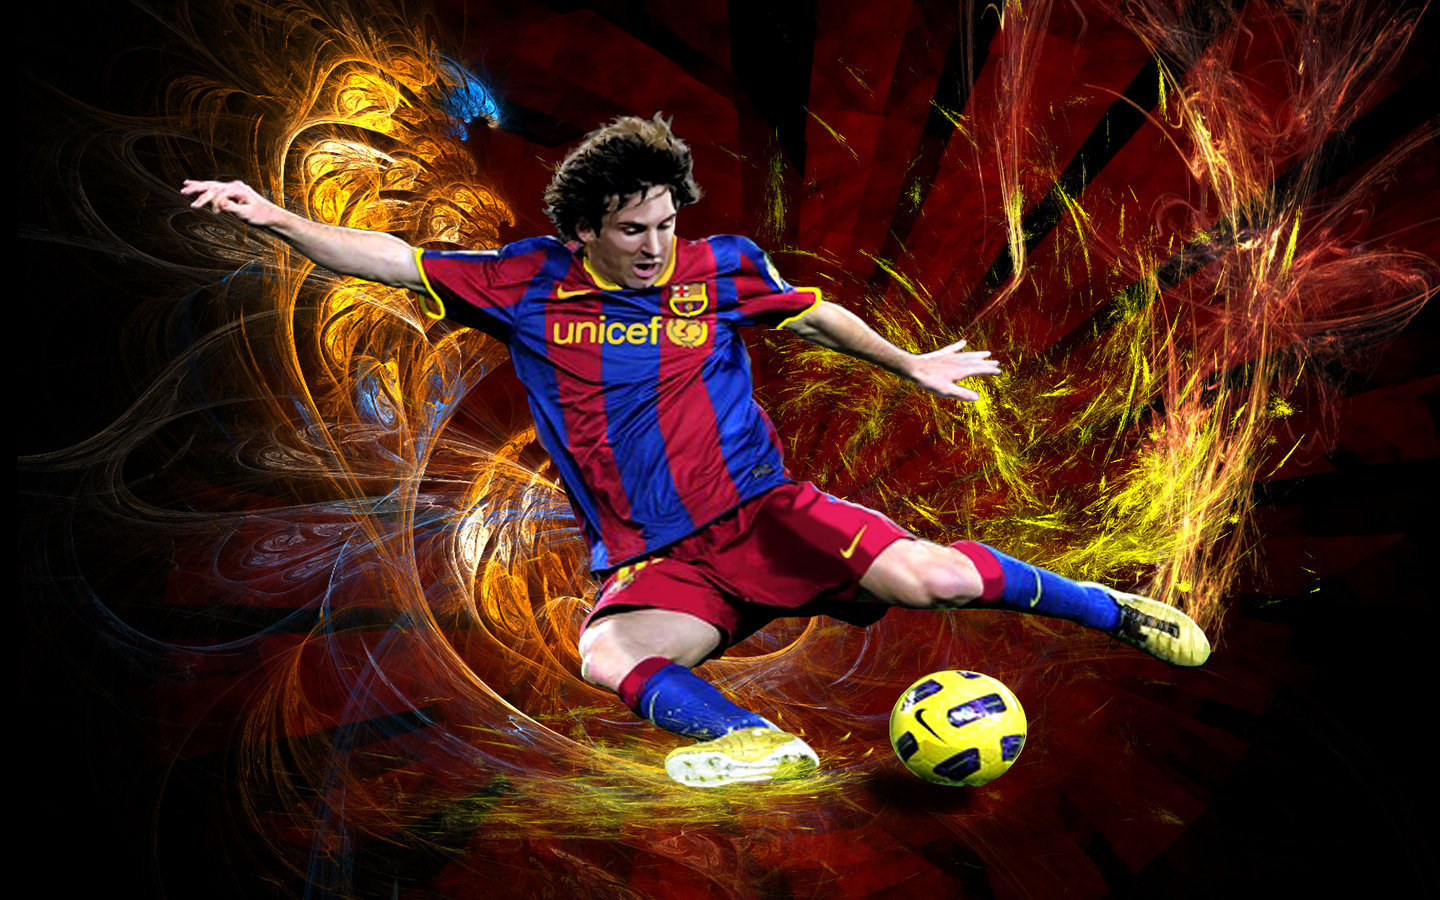 Kumpulan Wallpaper Lionel Messi Terbaru Deloiz Wallpaper